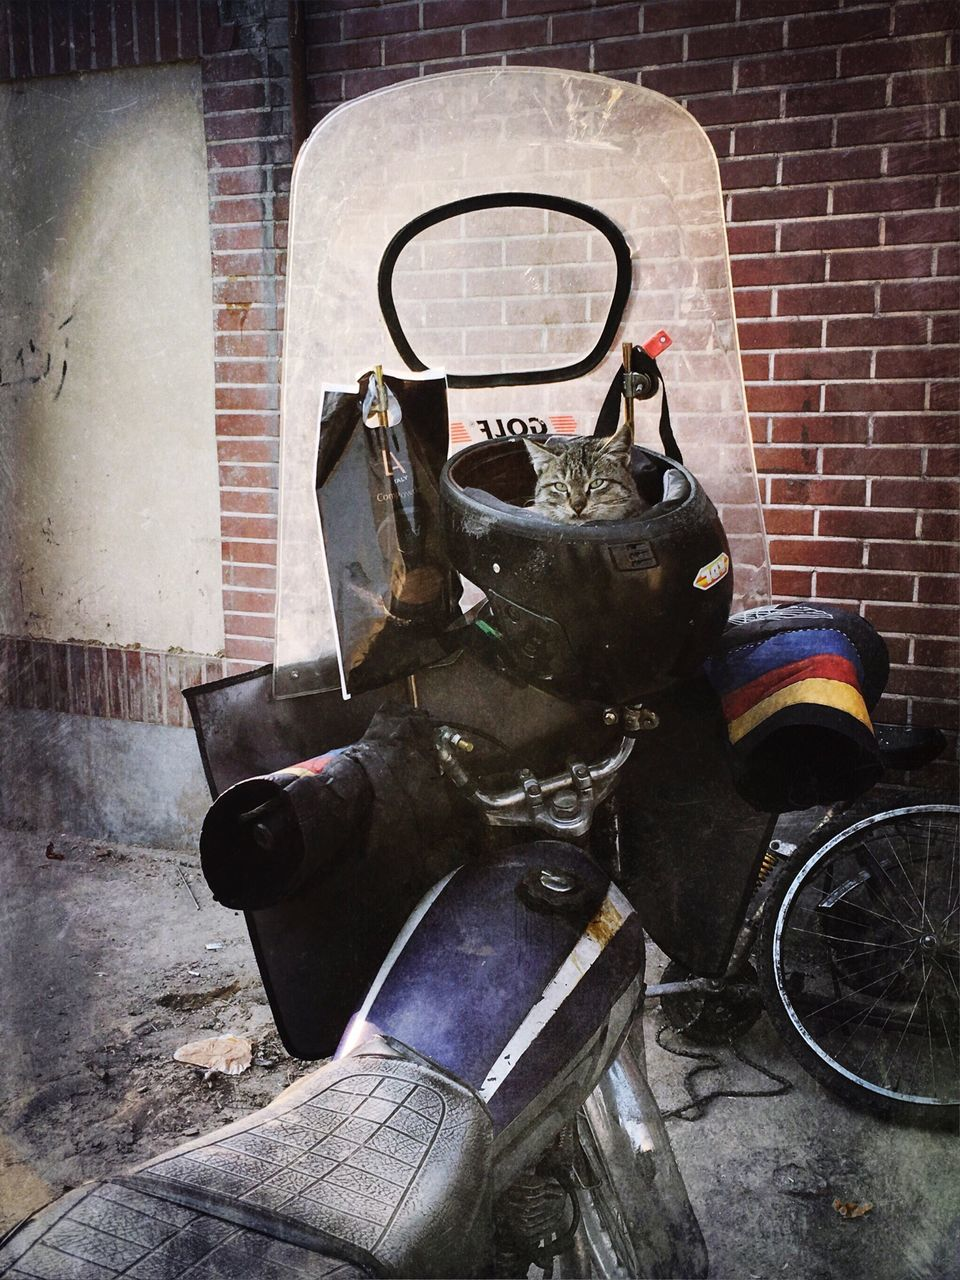 bicycle, brick wall, transportation, no people, land vehicle, indoors, day, workshop, motorcycle, architecture, mechanic, close-up